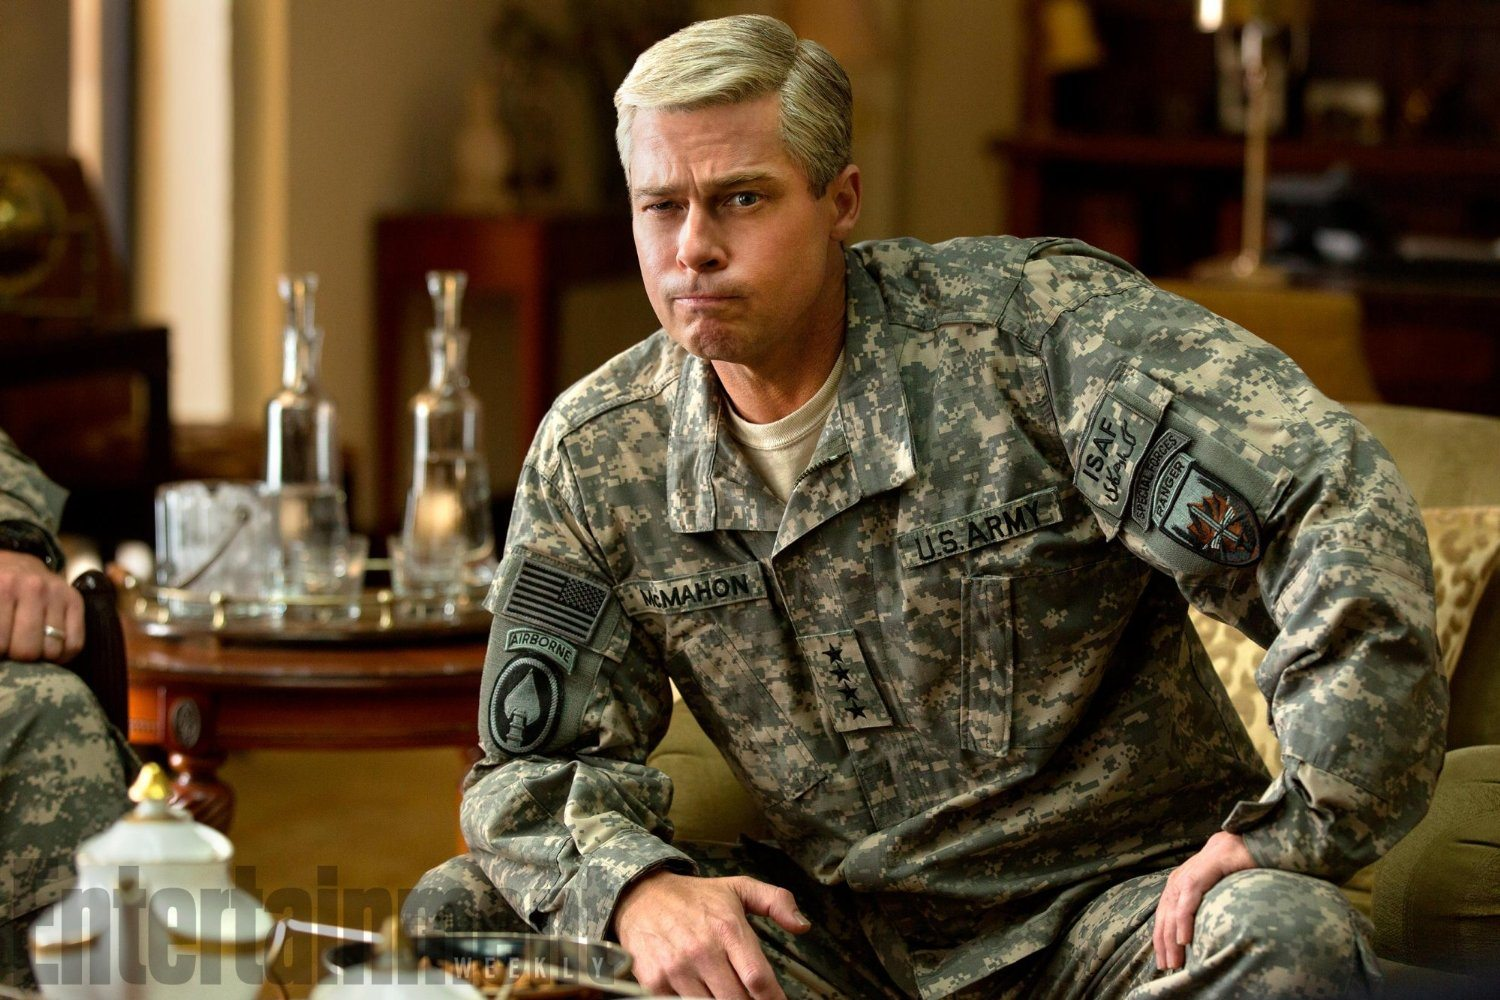 Brad Pitt in War Machine (2017)